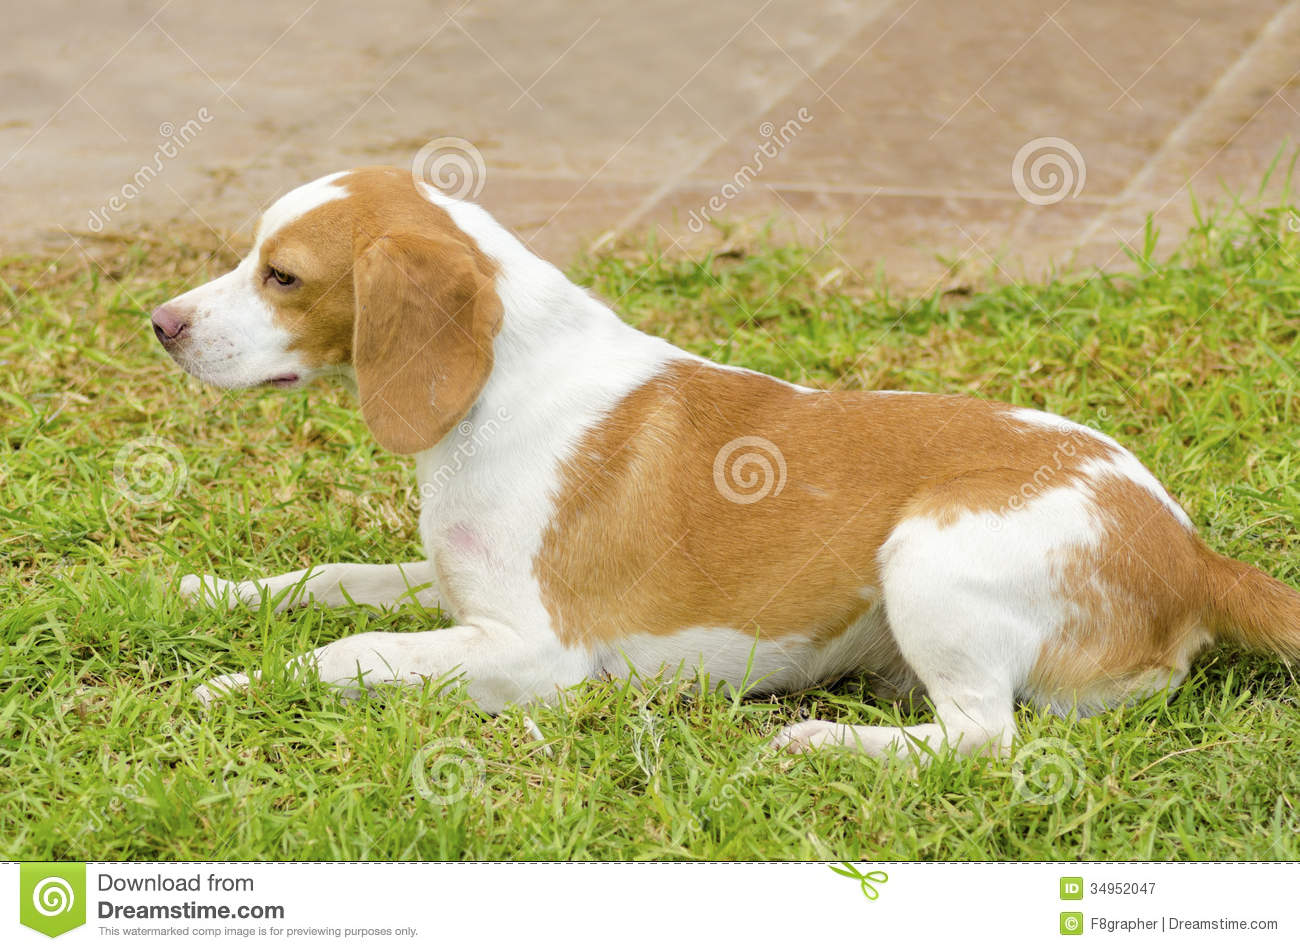 Istrian Shorthaired Hound Dog: Royalty Free Stock Graphy Istrian Shorthaired Hound Young Beautiful White Orange Puppy Dog Sitting Lawn Short Haired Breed